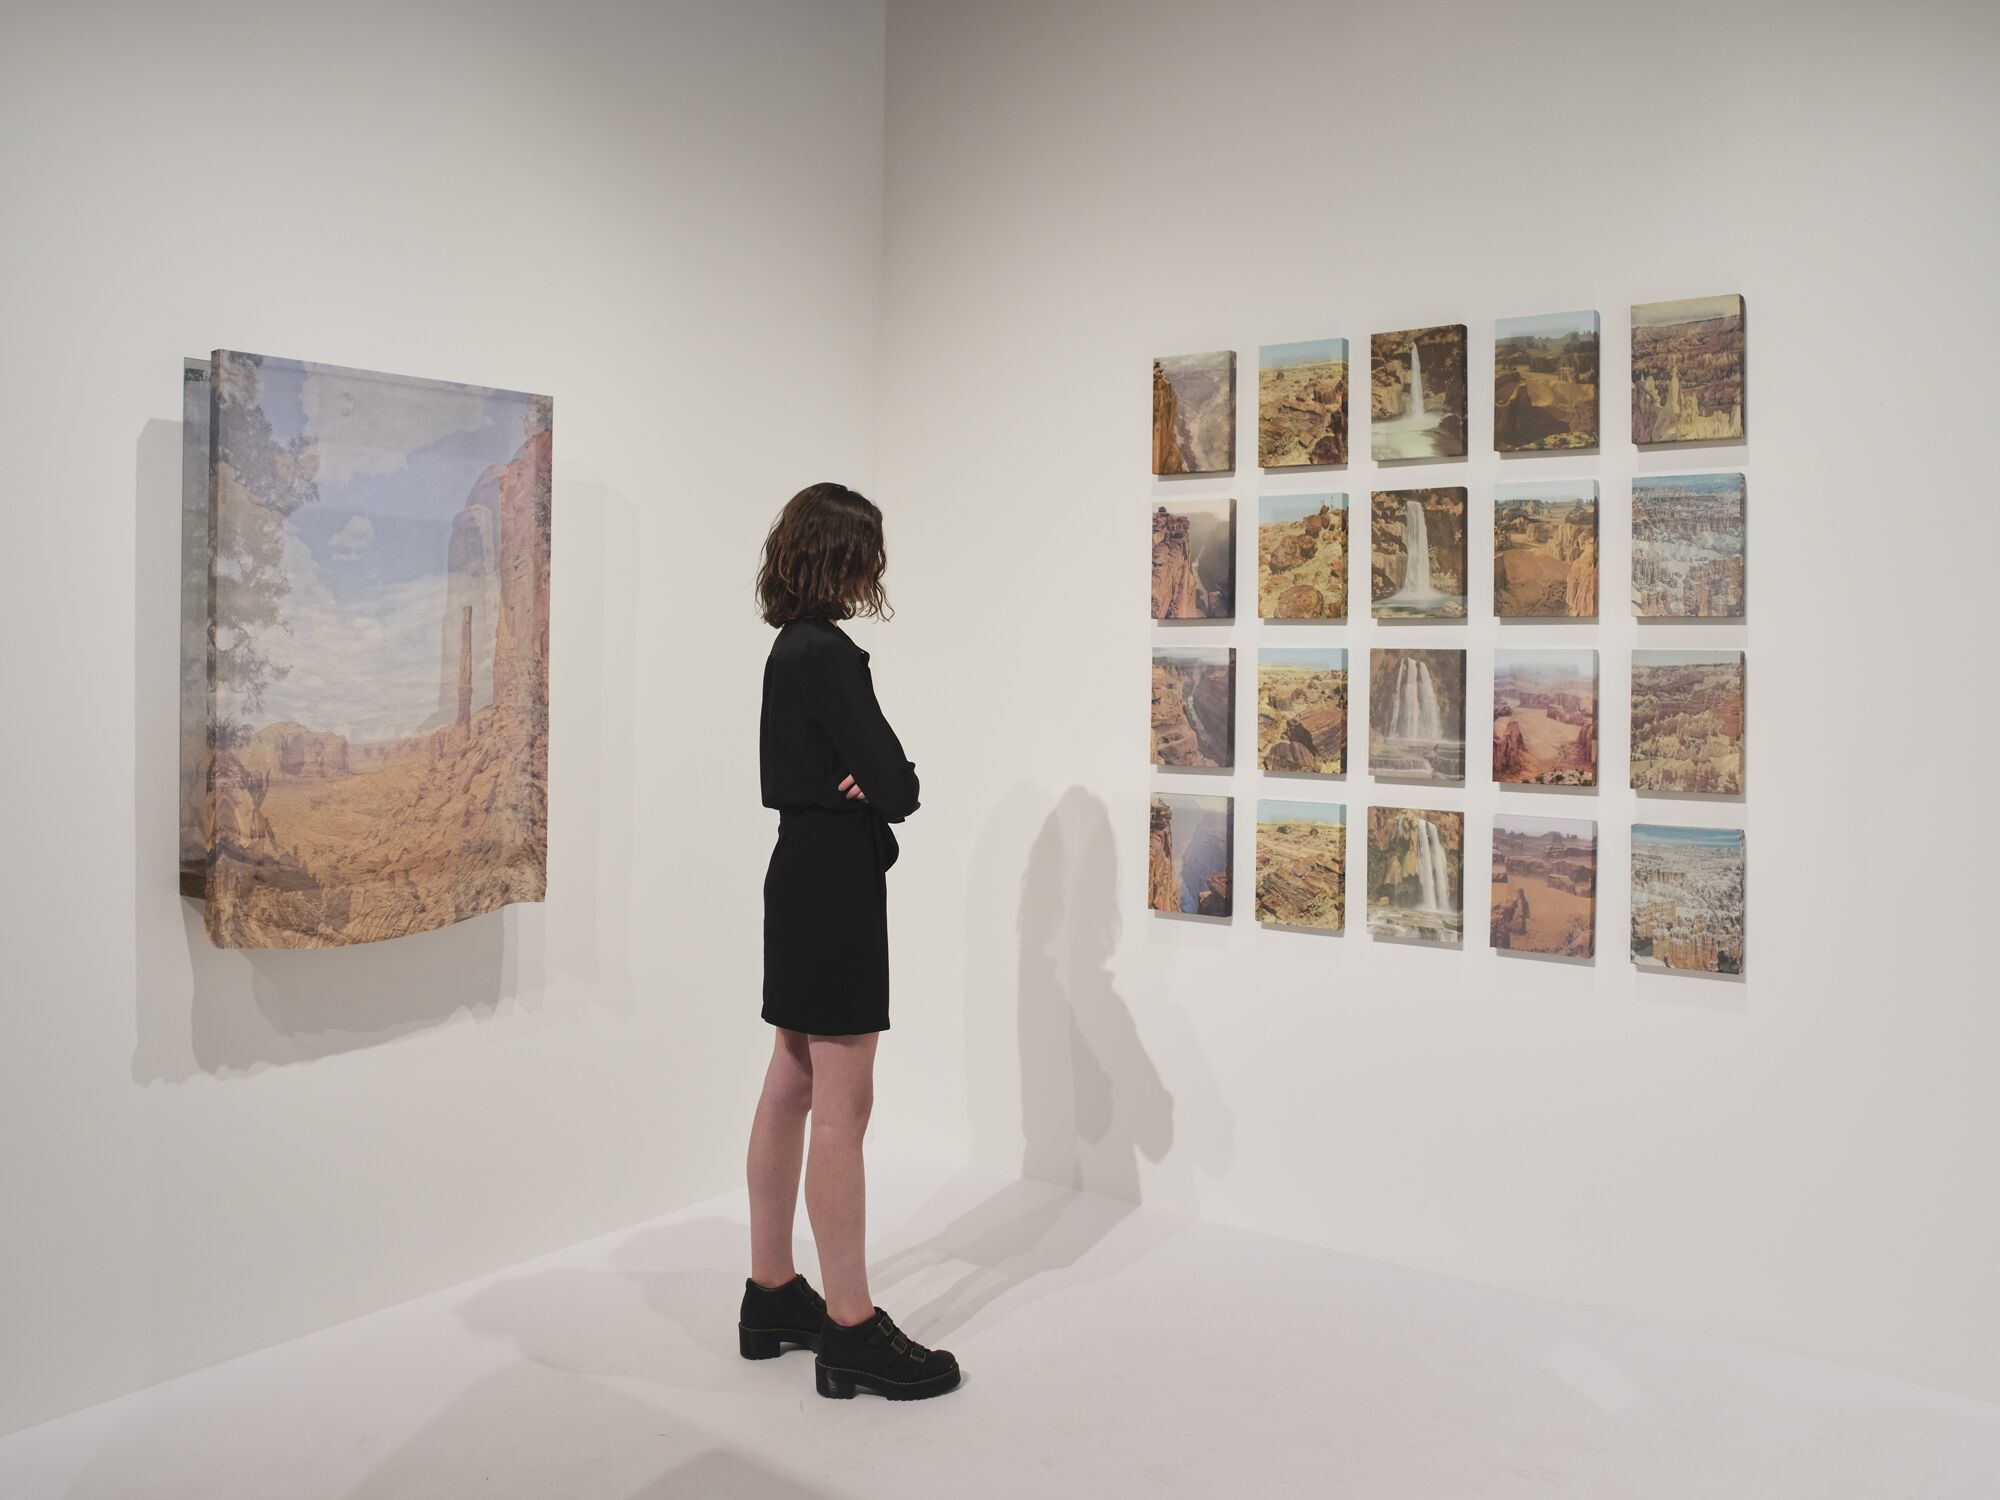 An adult stands in front of a grid of 20 small landscapes hung on a wall